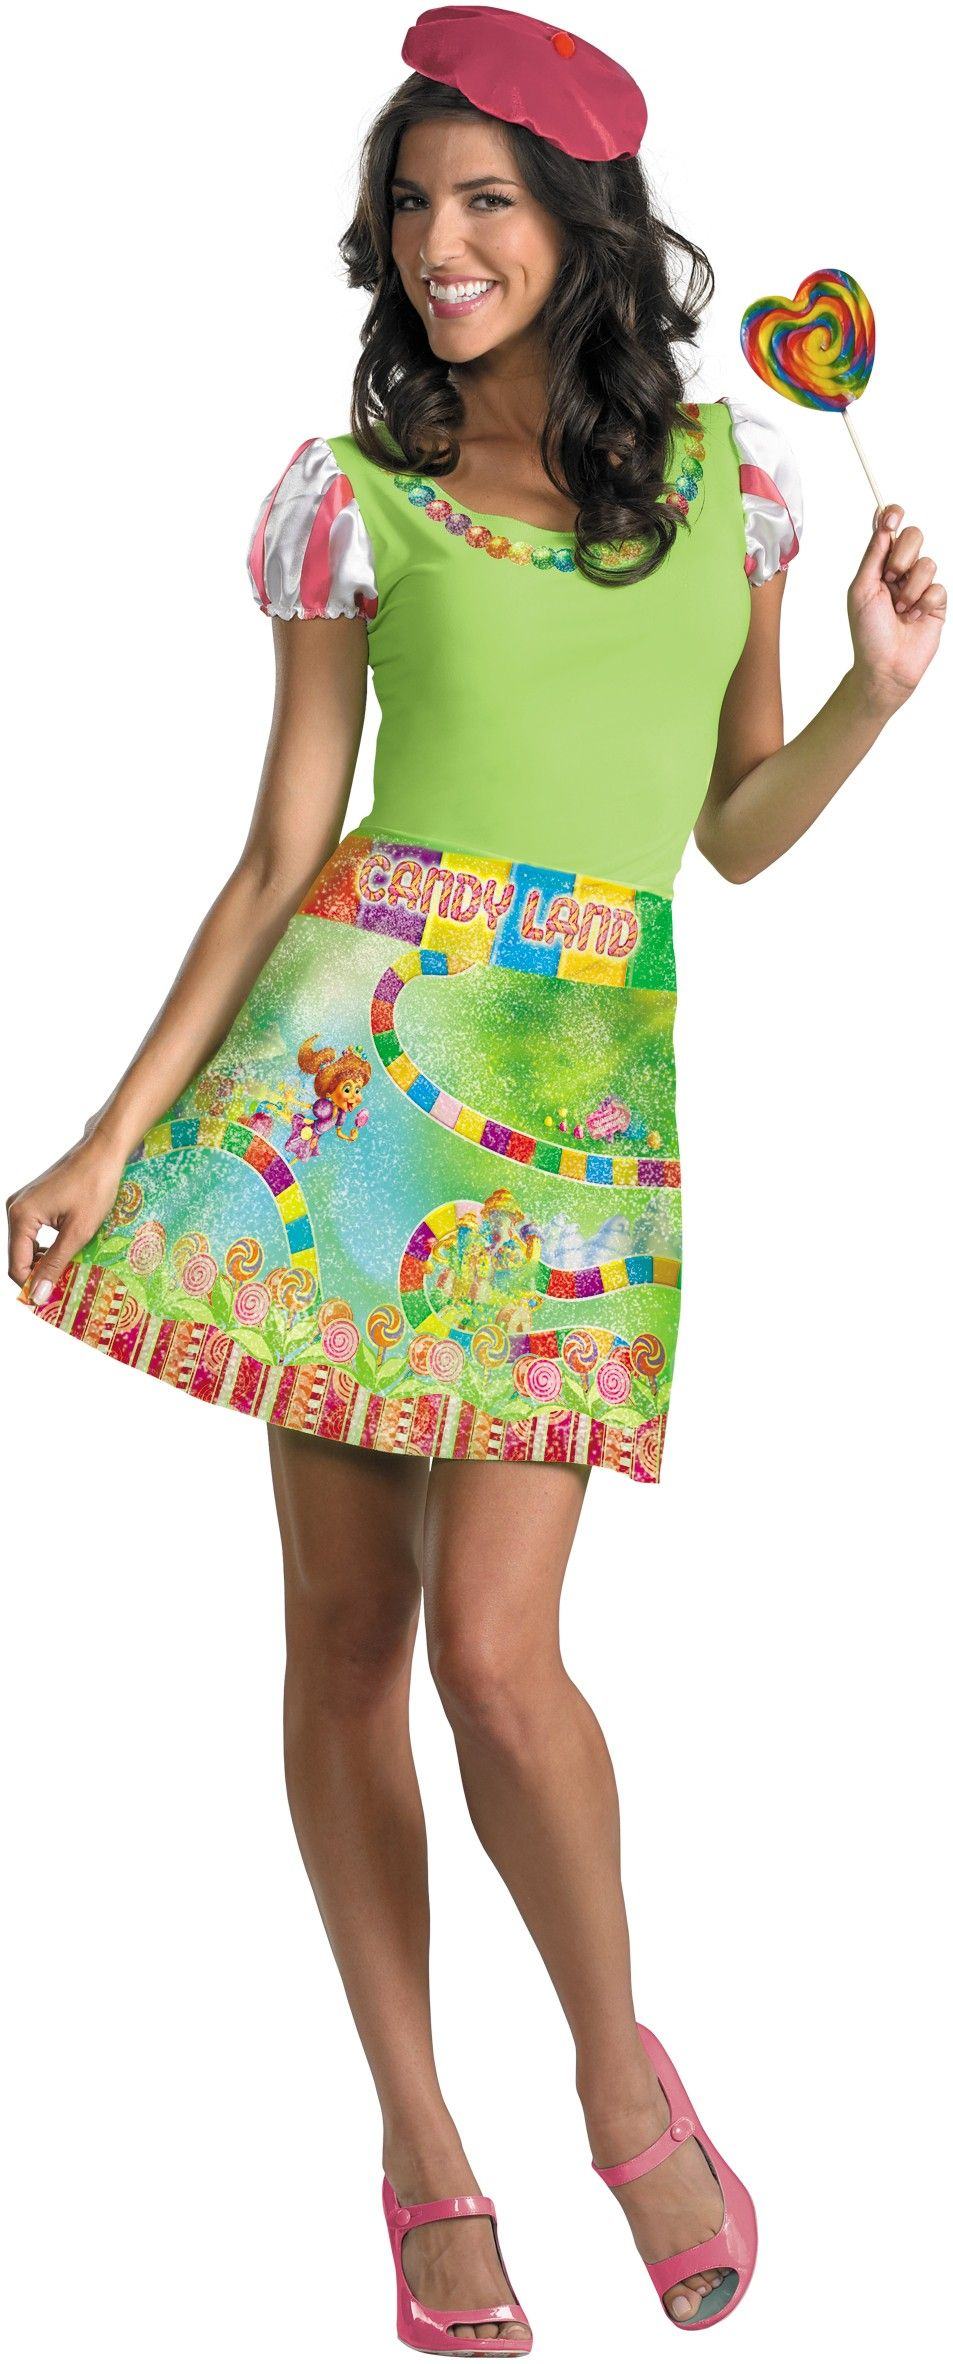 Candyland Ladies Adult Women's Costume Candy land costumes